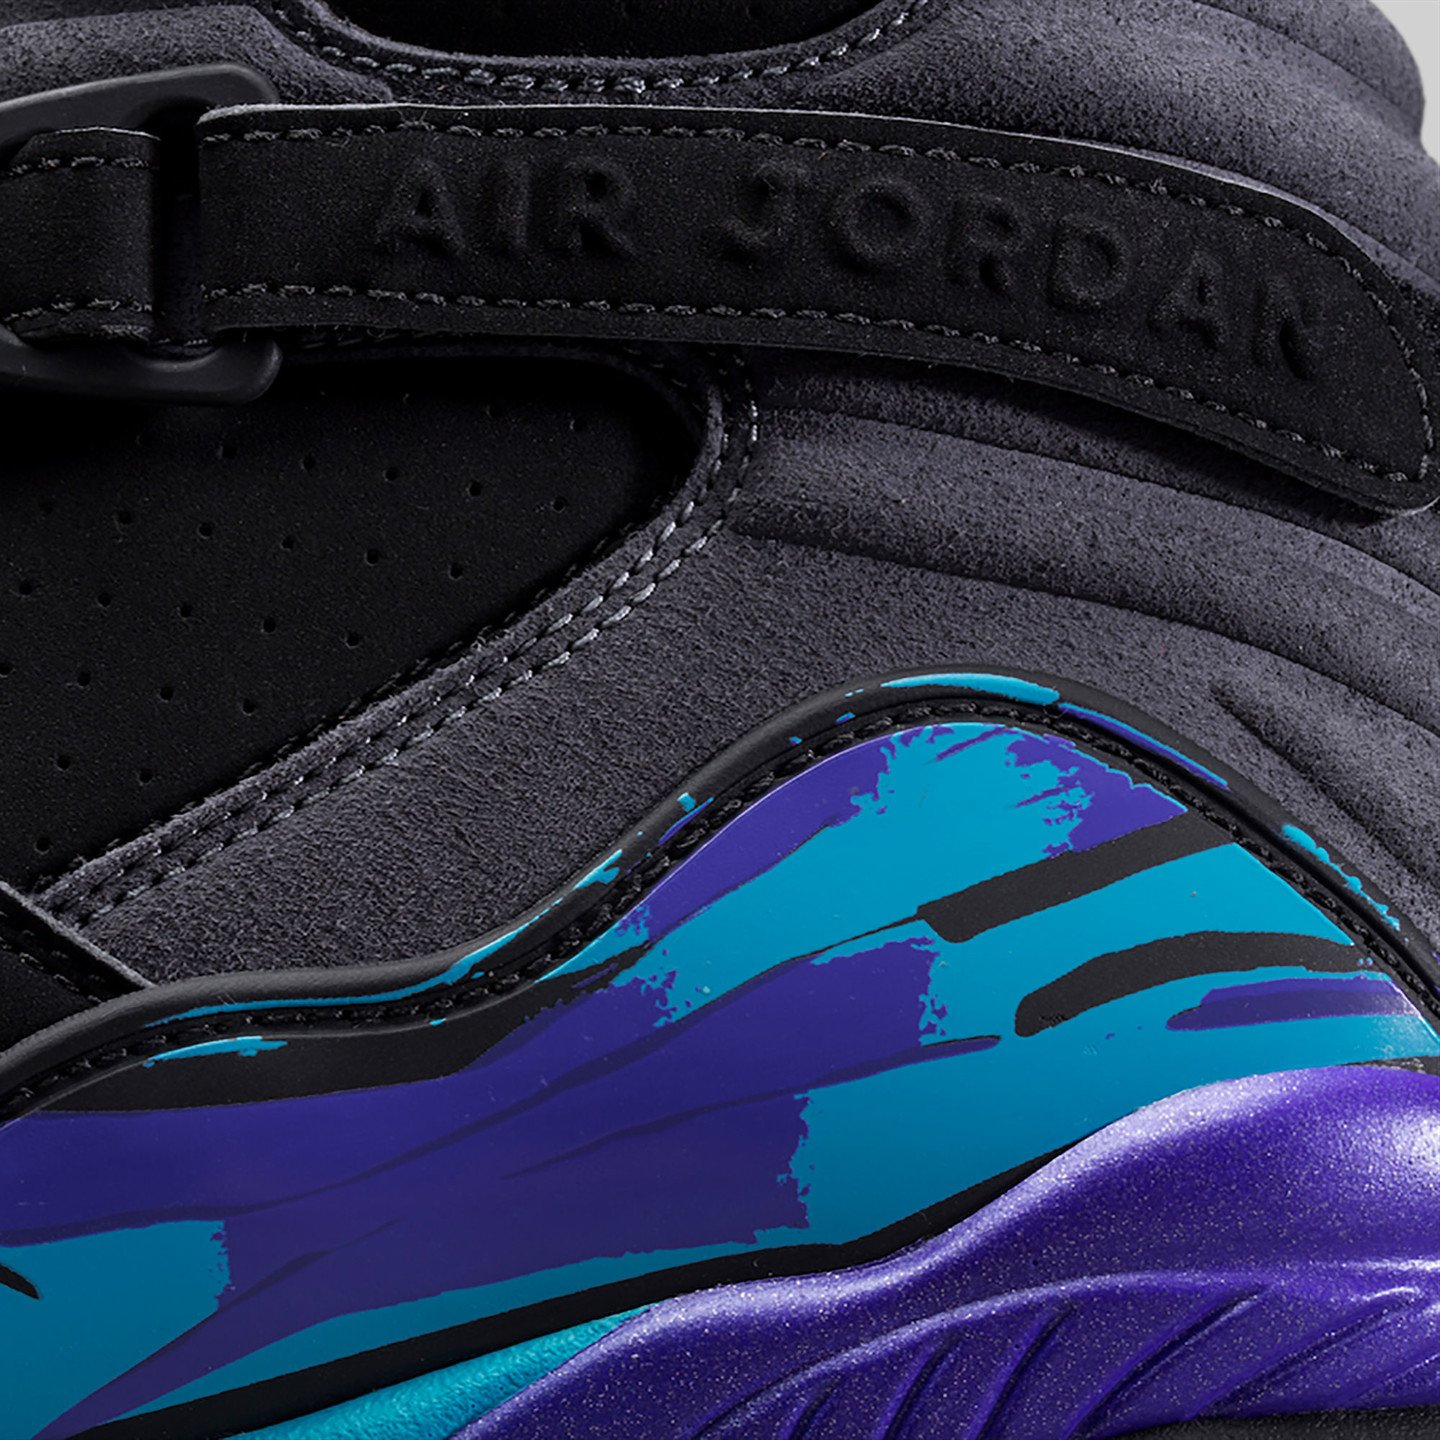 Jordan Air Jordan Retro 8 'Aqua' Black/True Red-Flint Grey-Bright Concord 305381-025-46